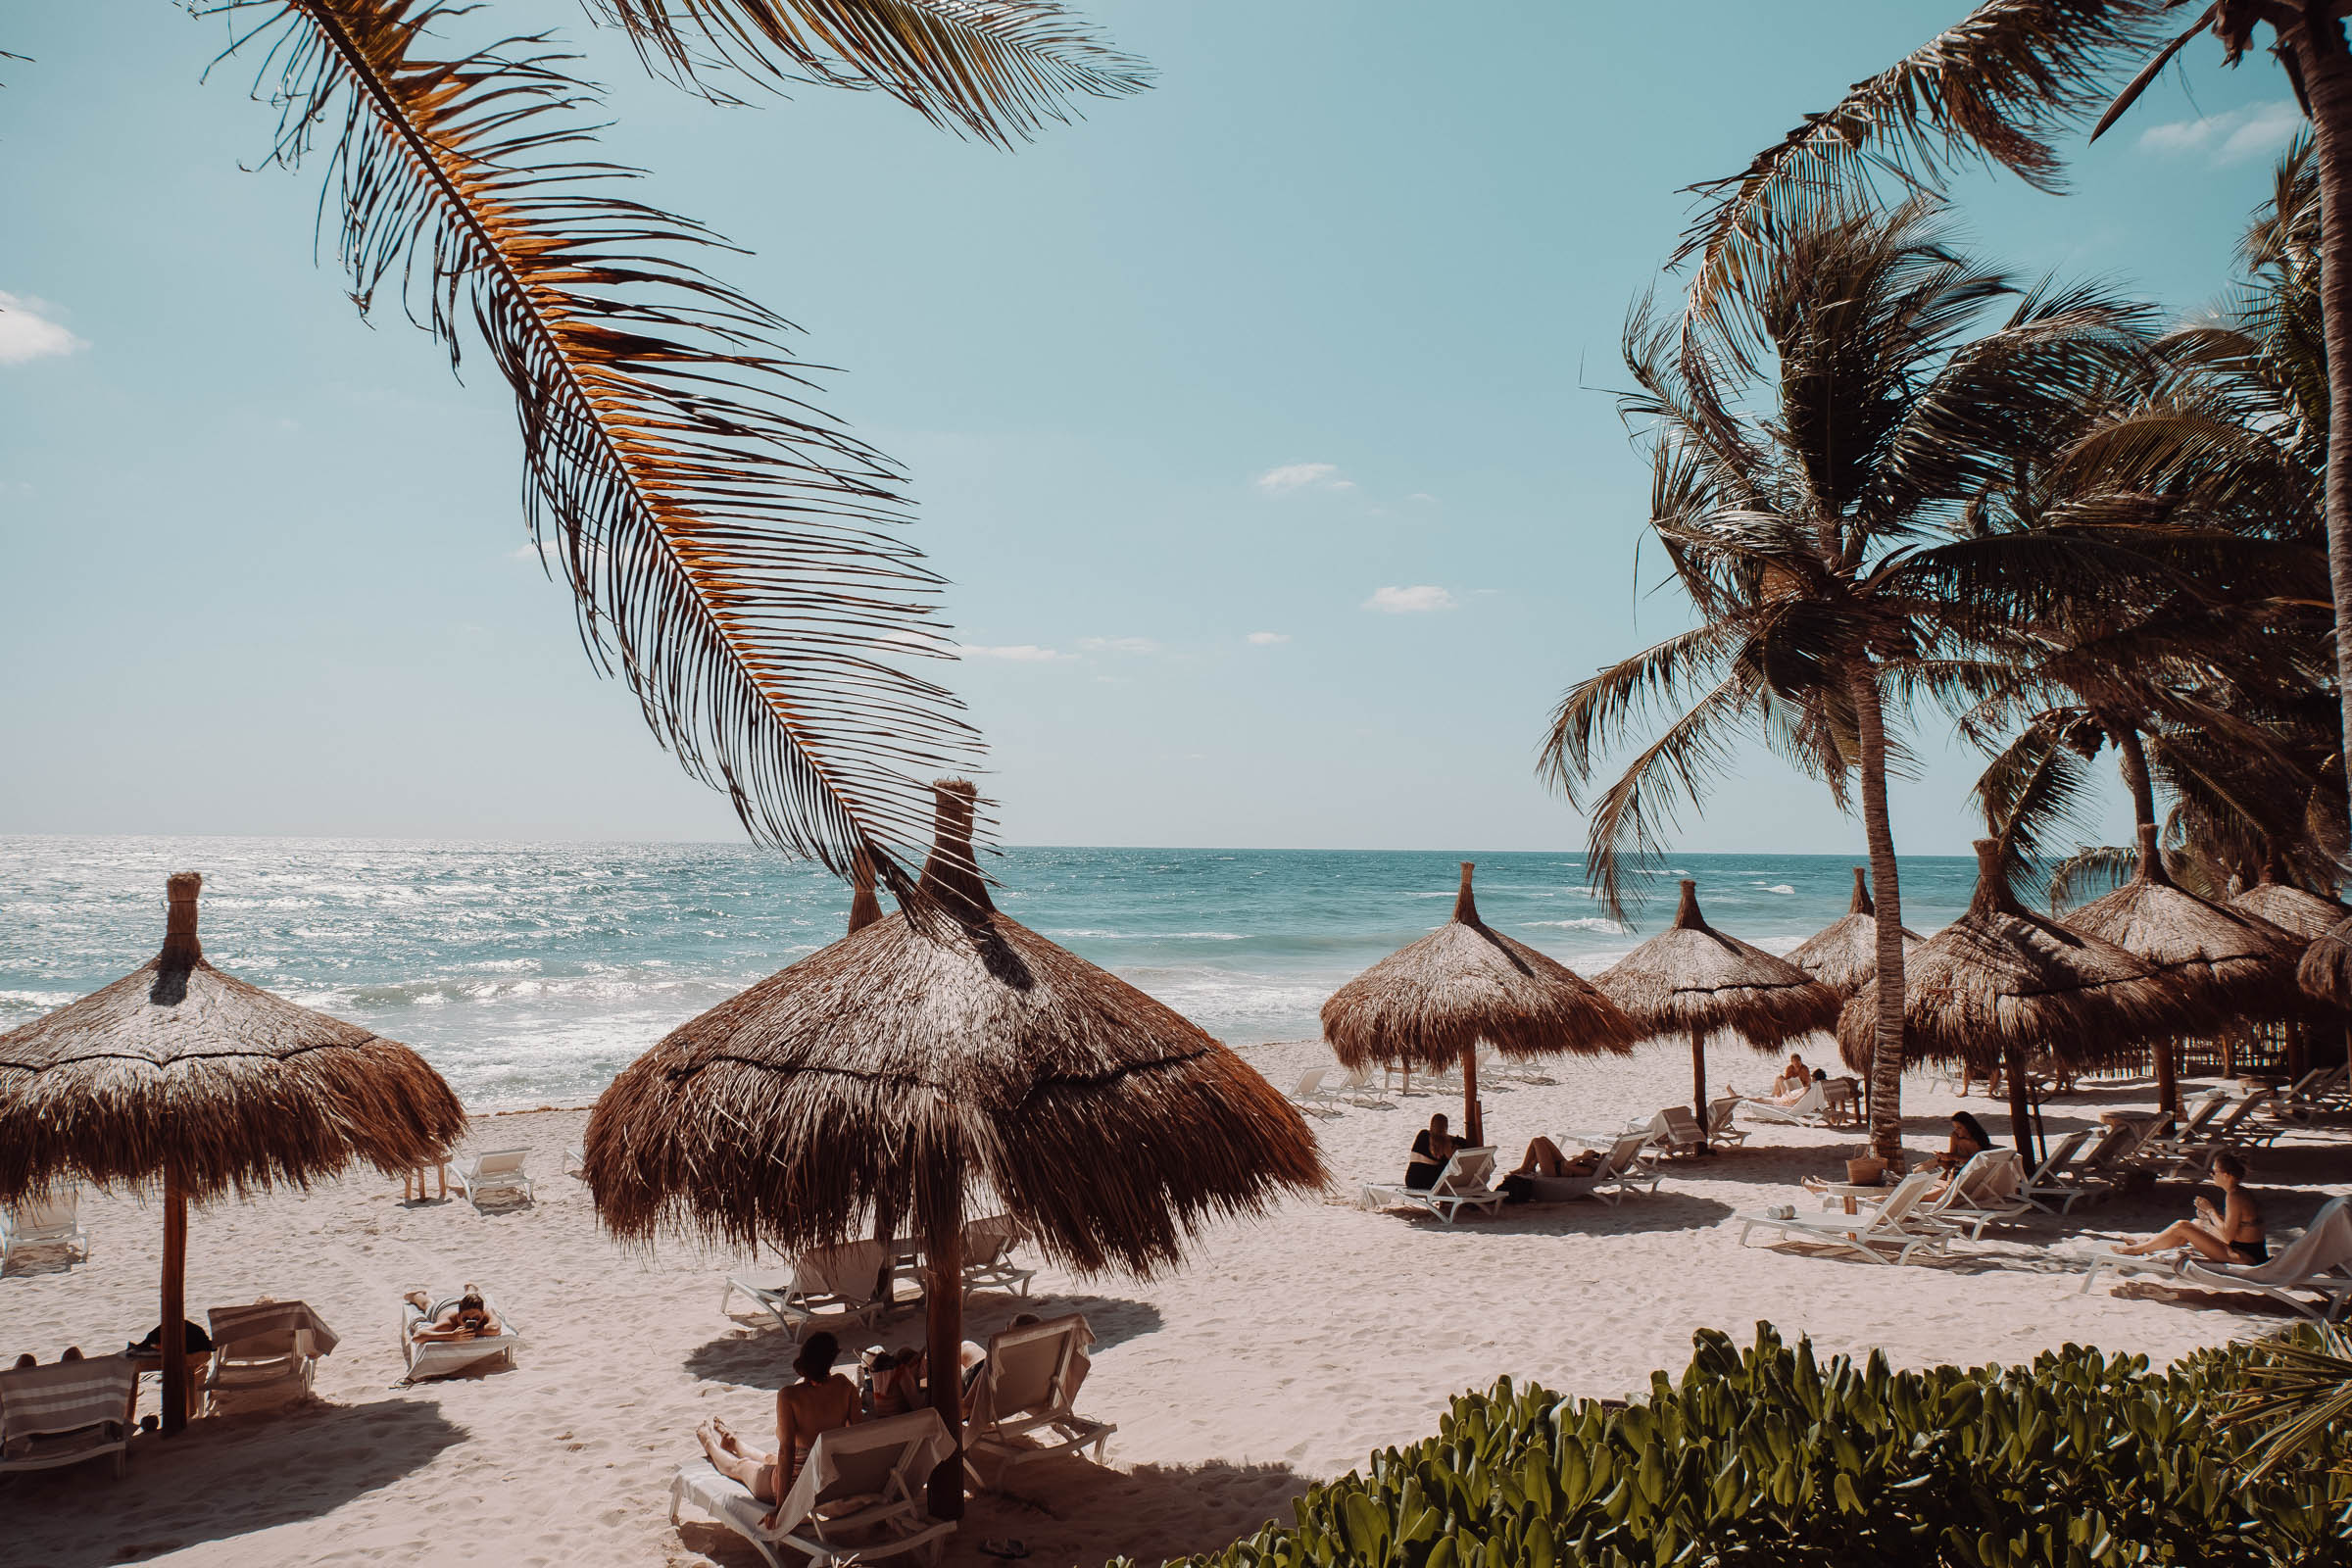 Chacon Images_Mexico2019_Web-70.jpg